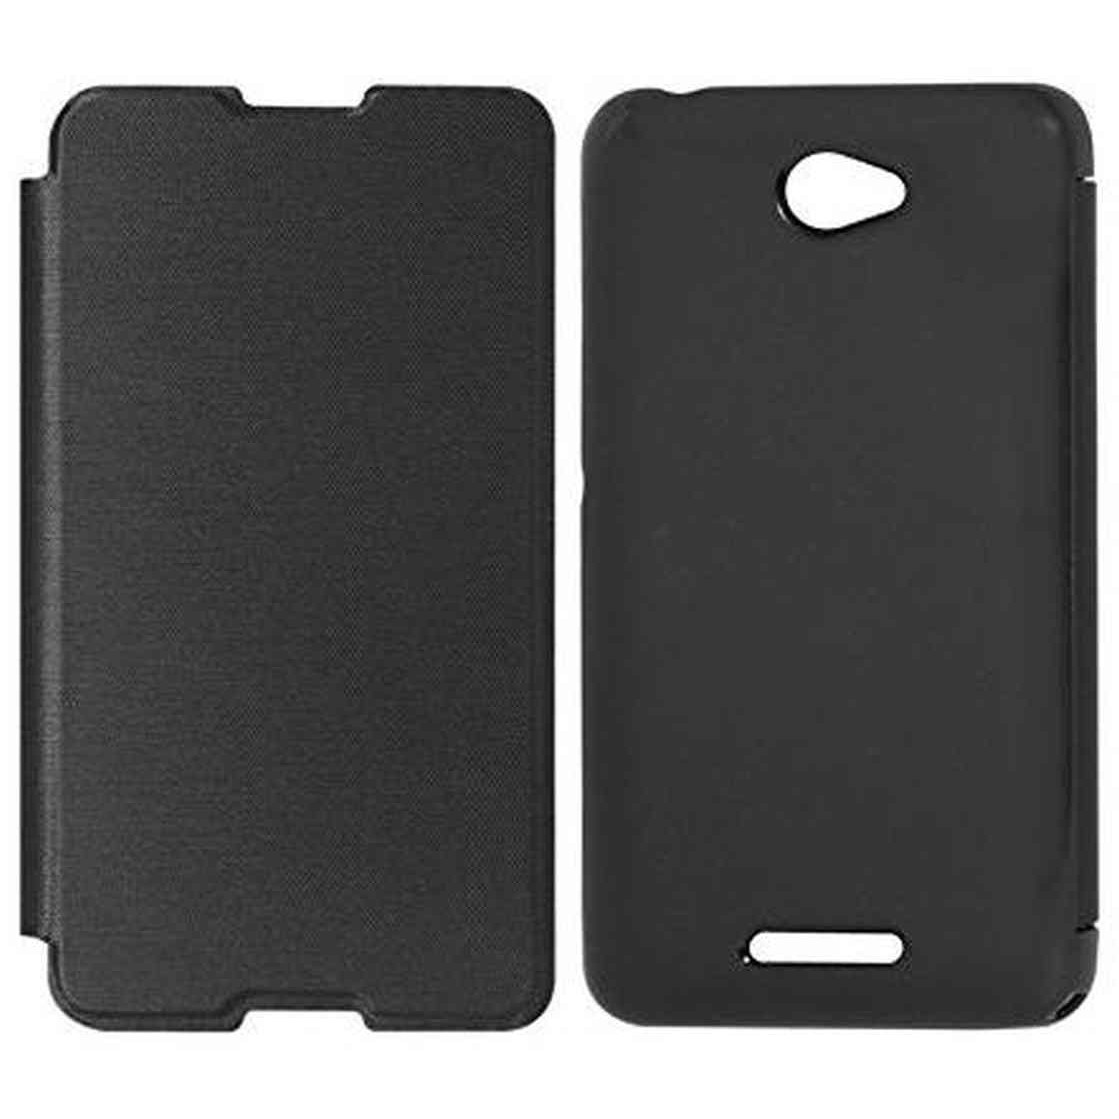 uk availability 3f641 9934a Flip Cover for Sony Xperia E4 Dual - Black